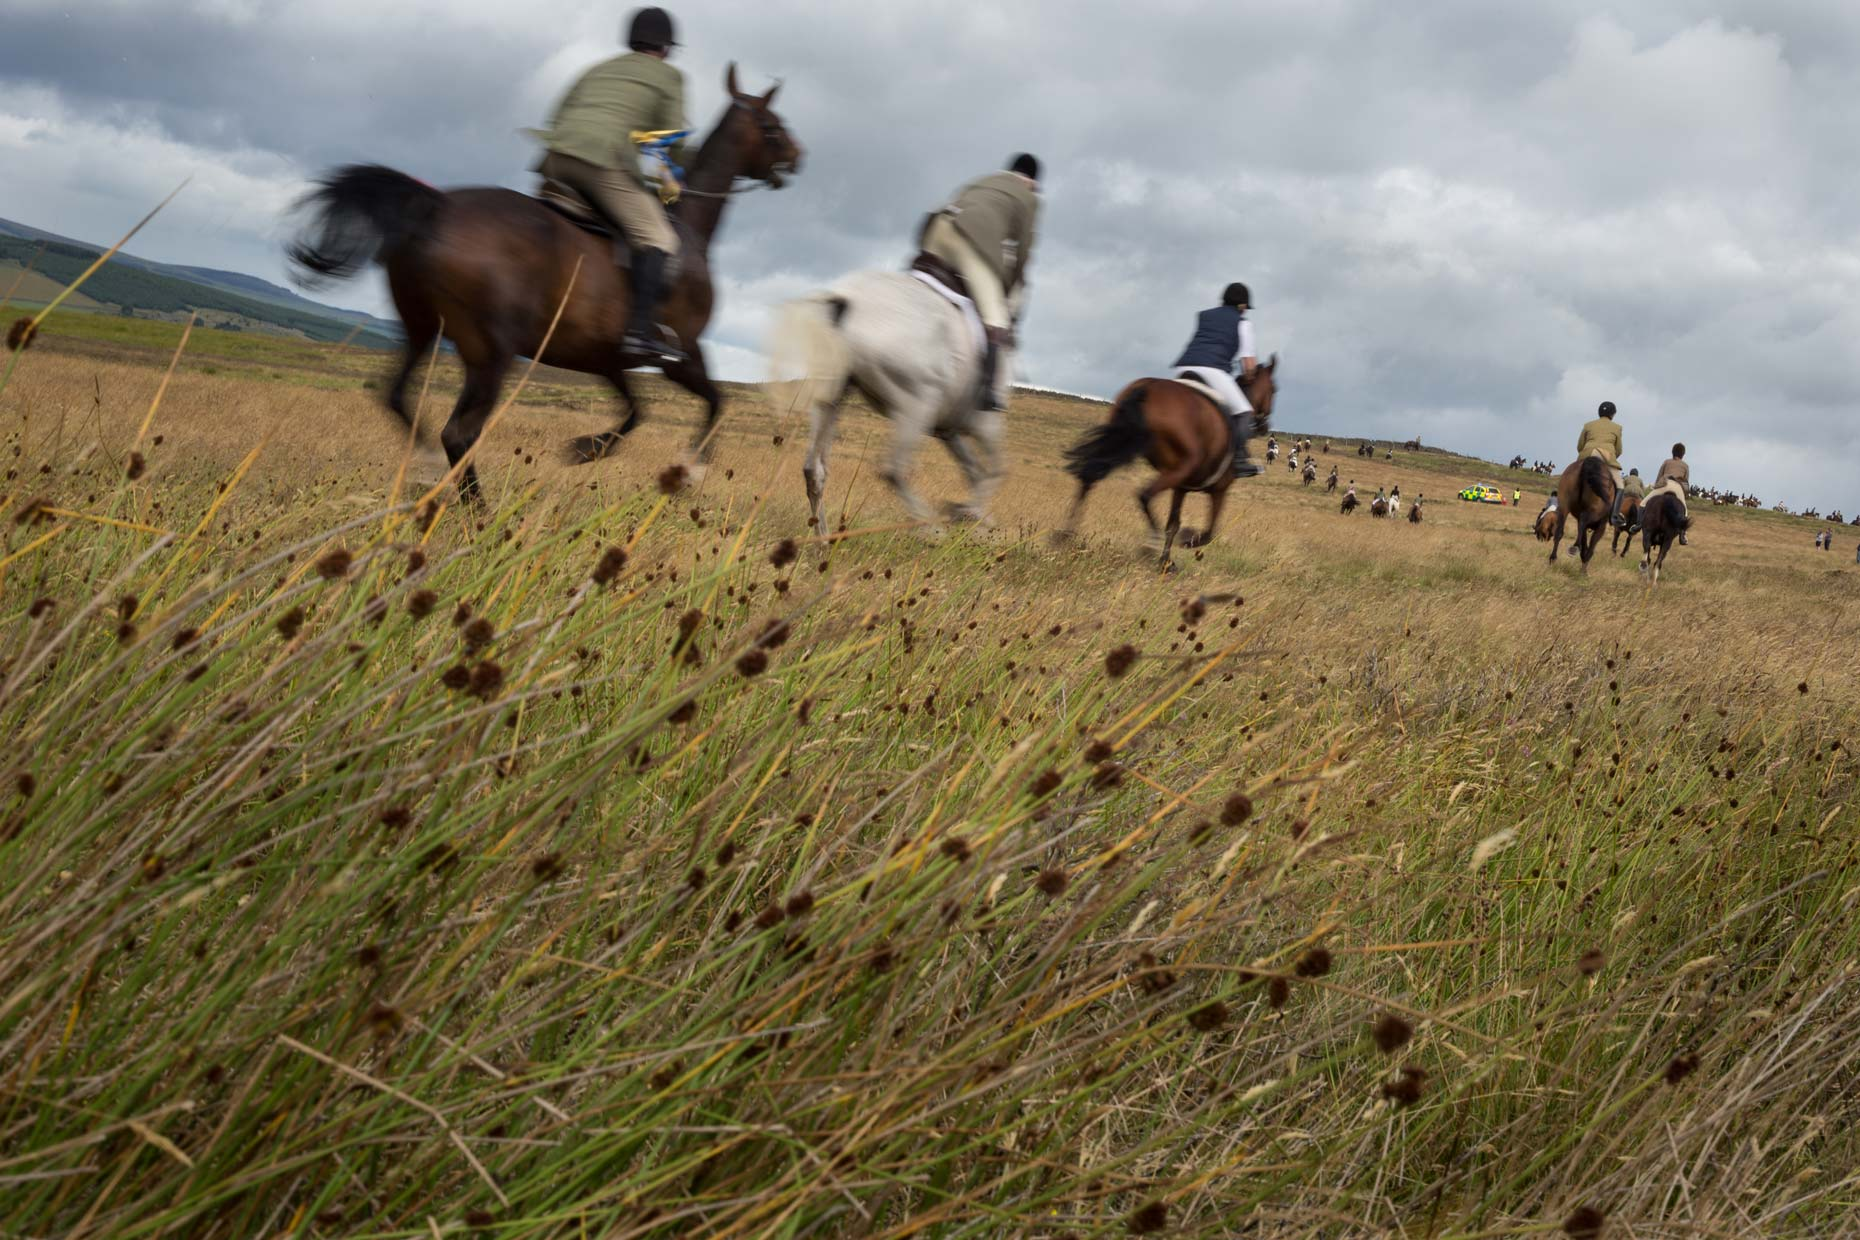 Horses at Lauder Common Riding, Scotland photographer